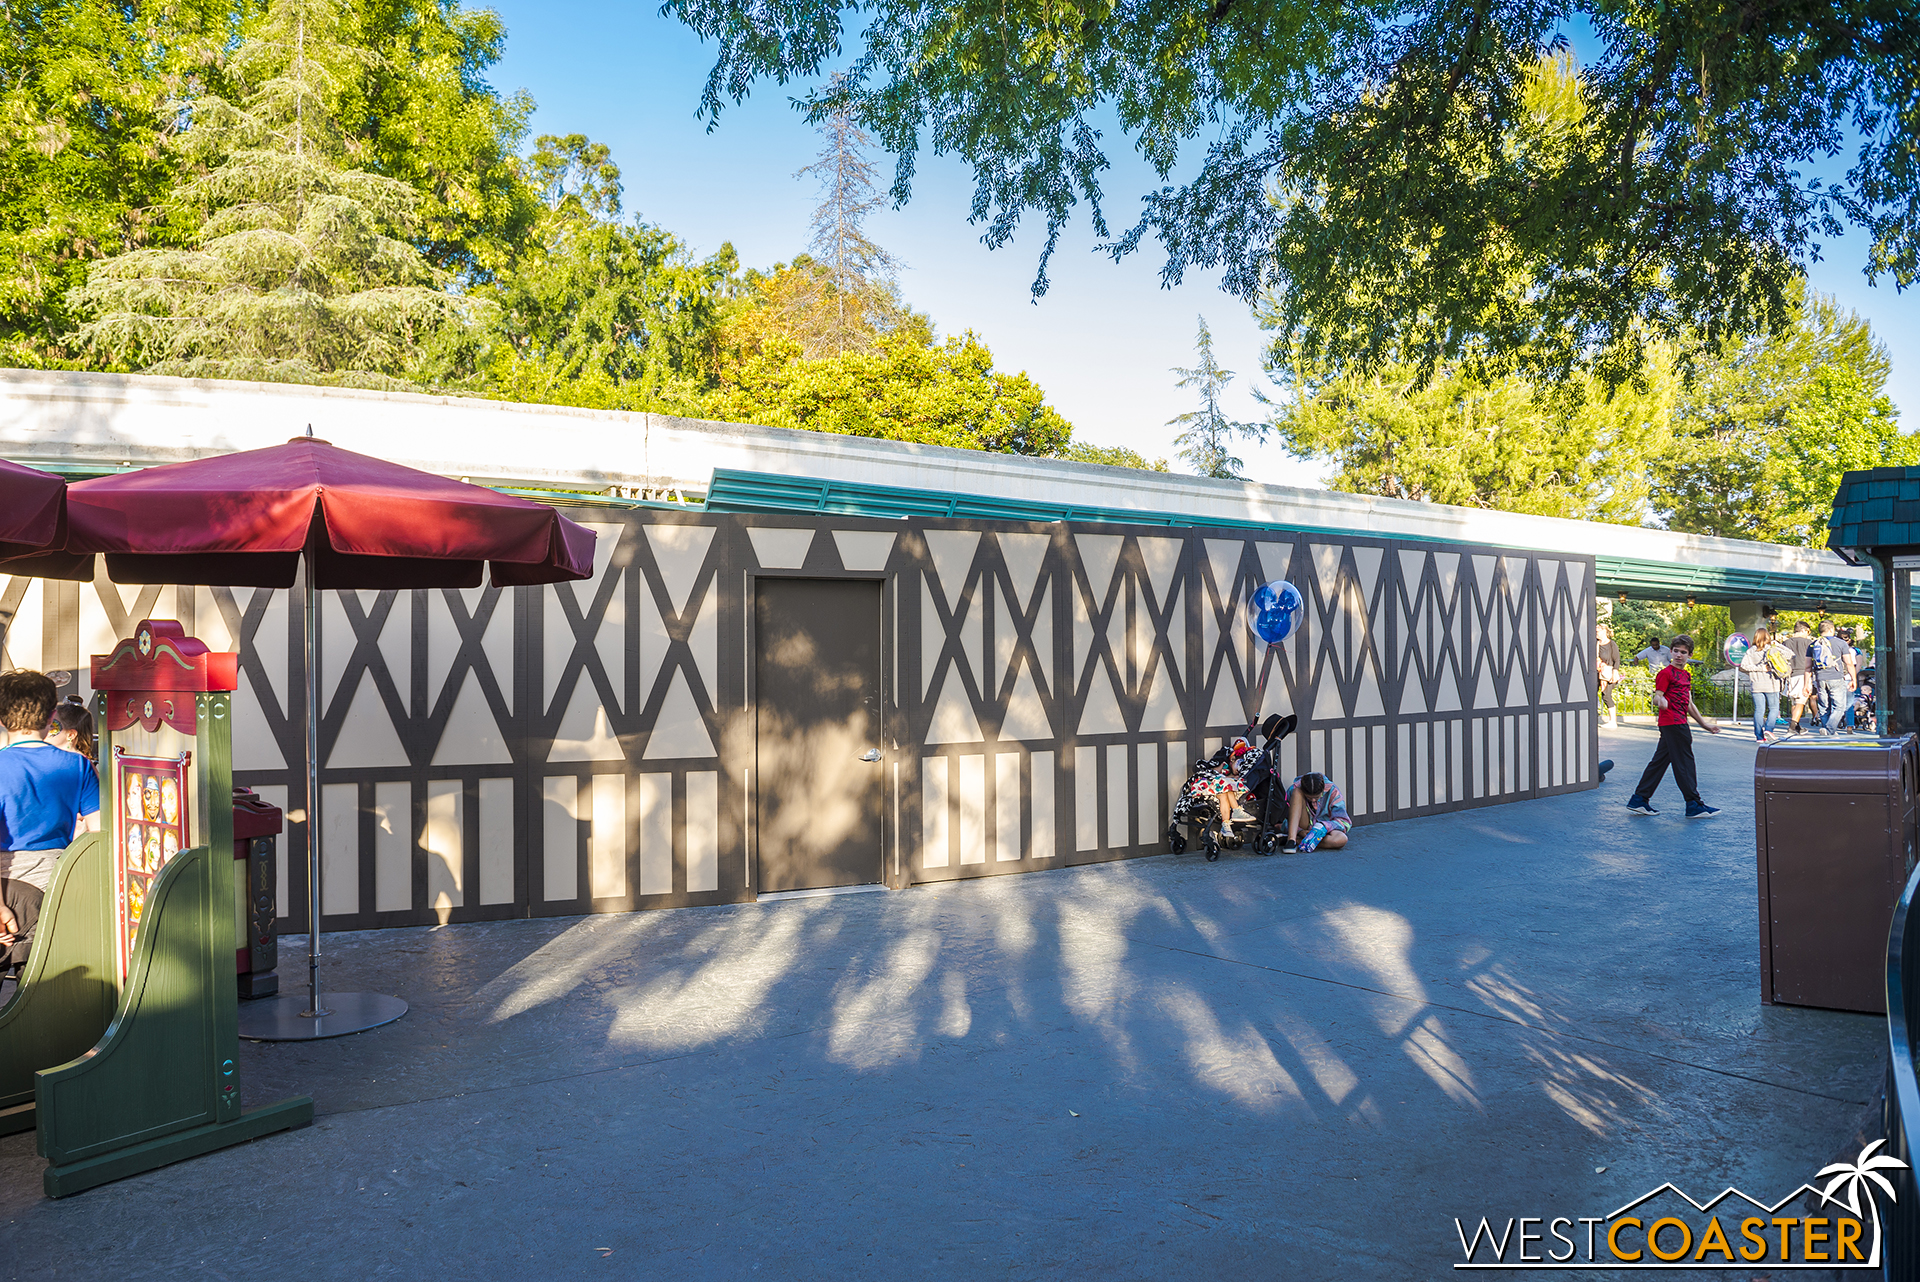 I'm assuming that these work walls by the old Fantasia Gardens area of the Motor Boats Cruise are concealing the permanent stands.